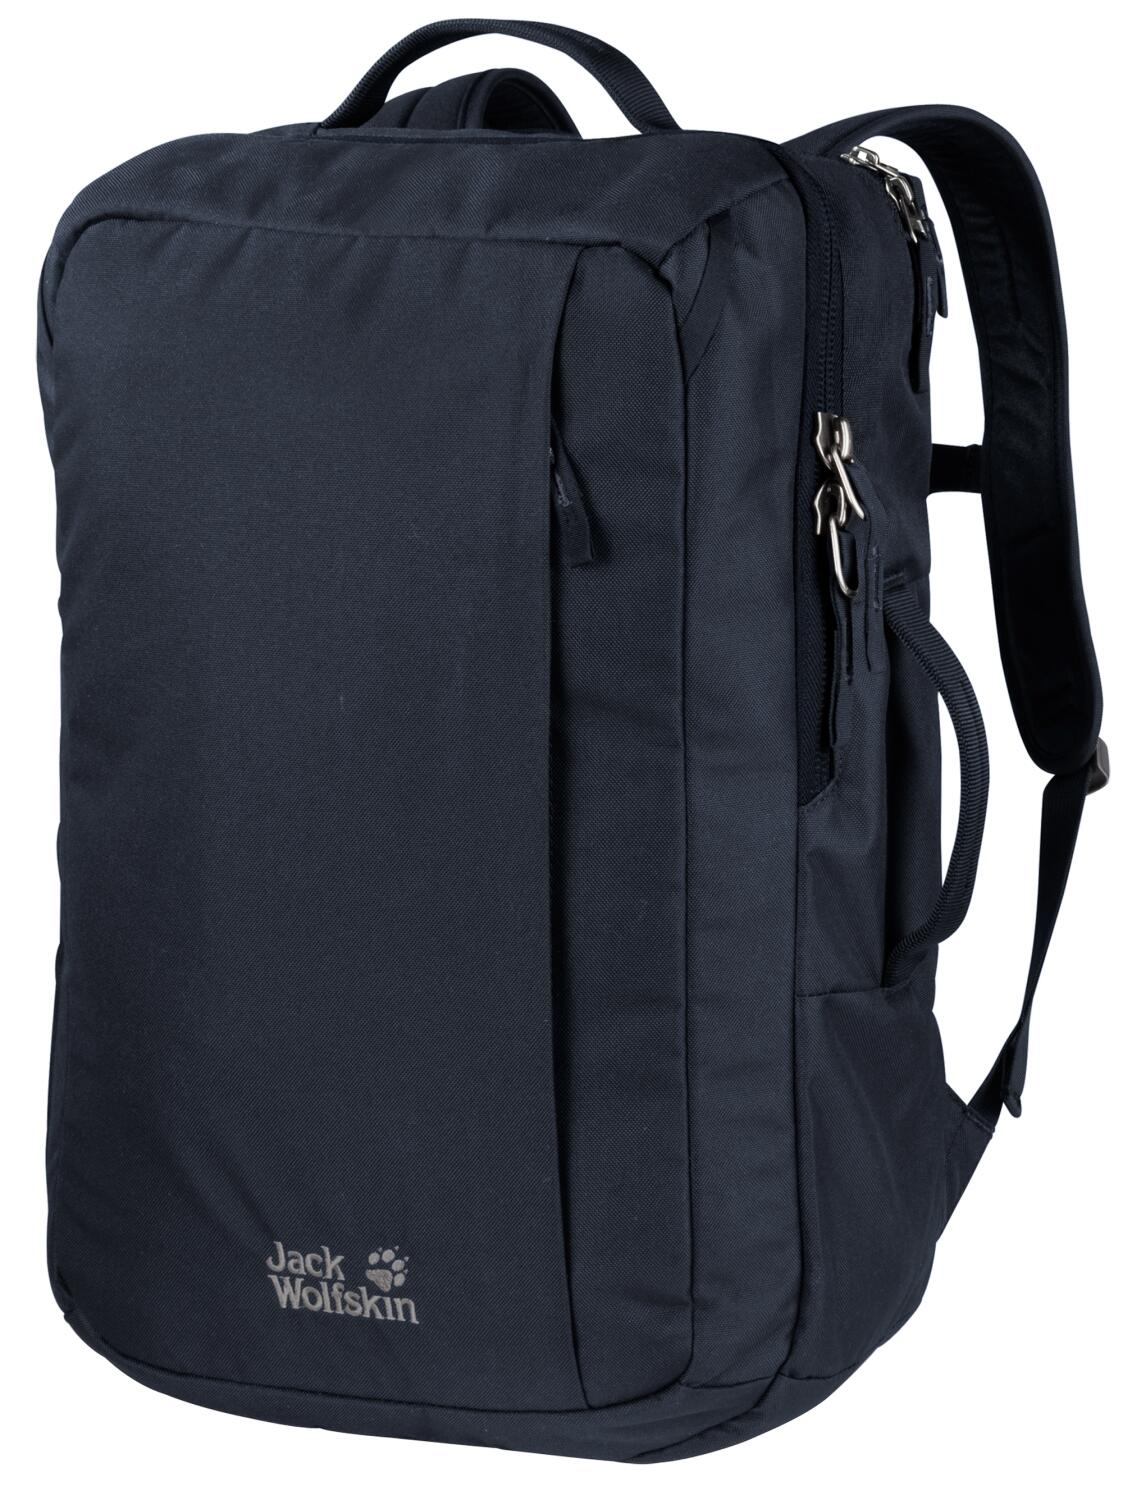 Jack Wolfskin Brooklyn 26 Rucksack 2-in-1